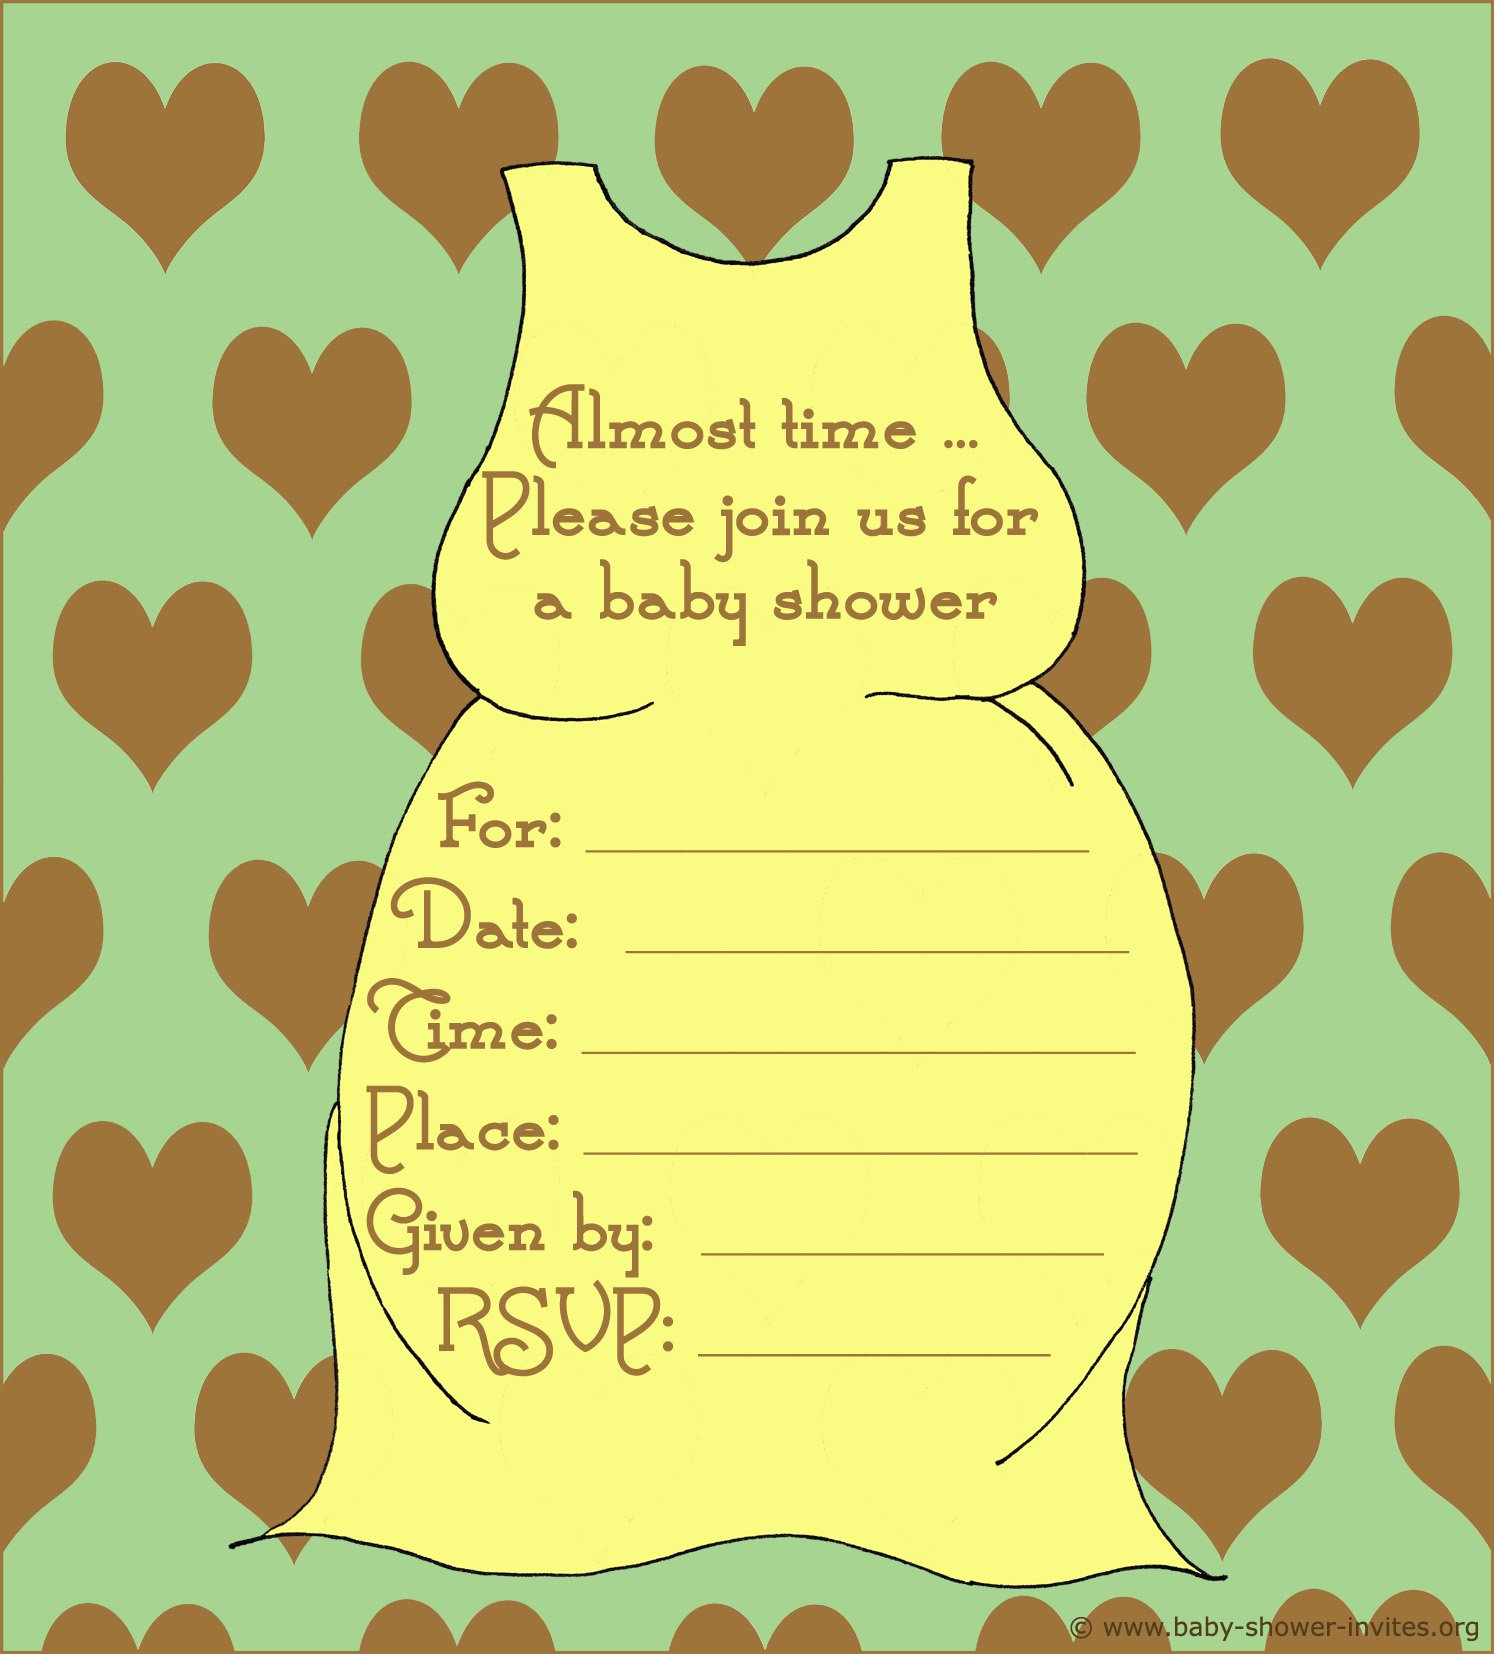 Full Size of Baby Shower:sturdy Baby Shower Invitation Template Image Concepts Baby Shower Poems Baby Shower Centerpieces Baby Shower Clip Art Baby Shower Flowers Baby Shower Stuff Arreglos Para Baby Shower